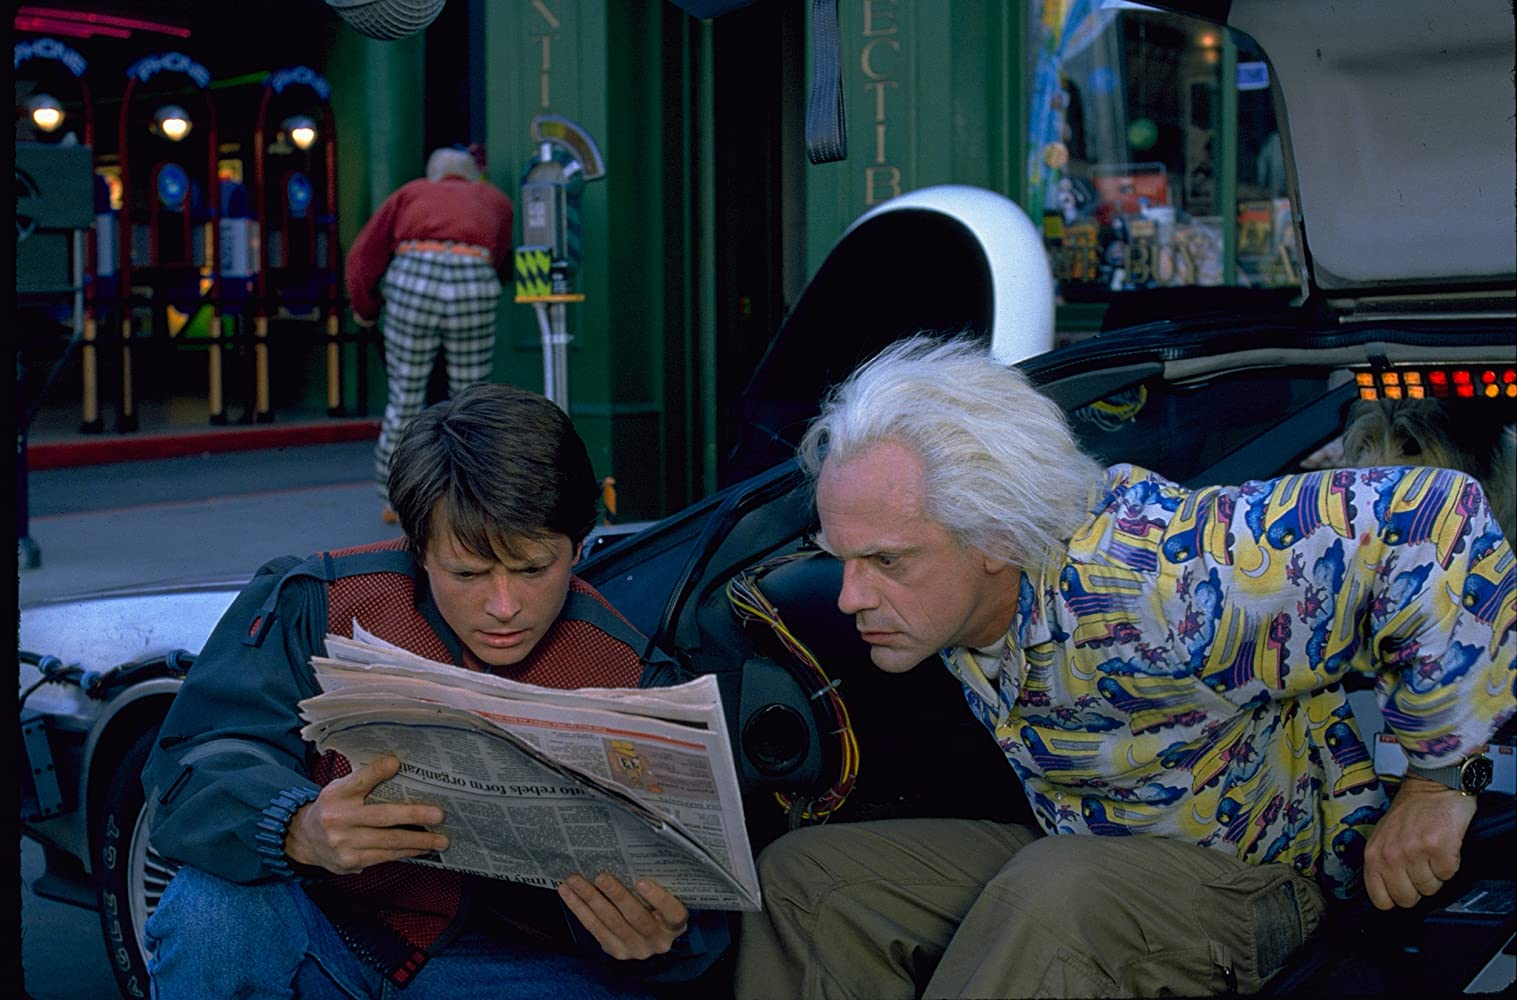 Michael J. Fox, Christopher Lloyd, and Thomas F. Wilson in Back to the Future Part II (1989)